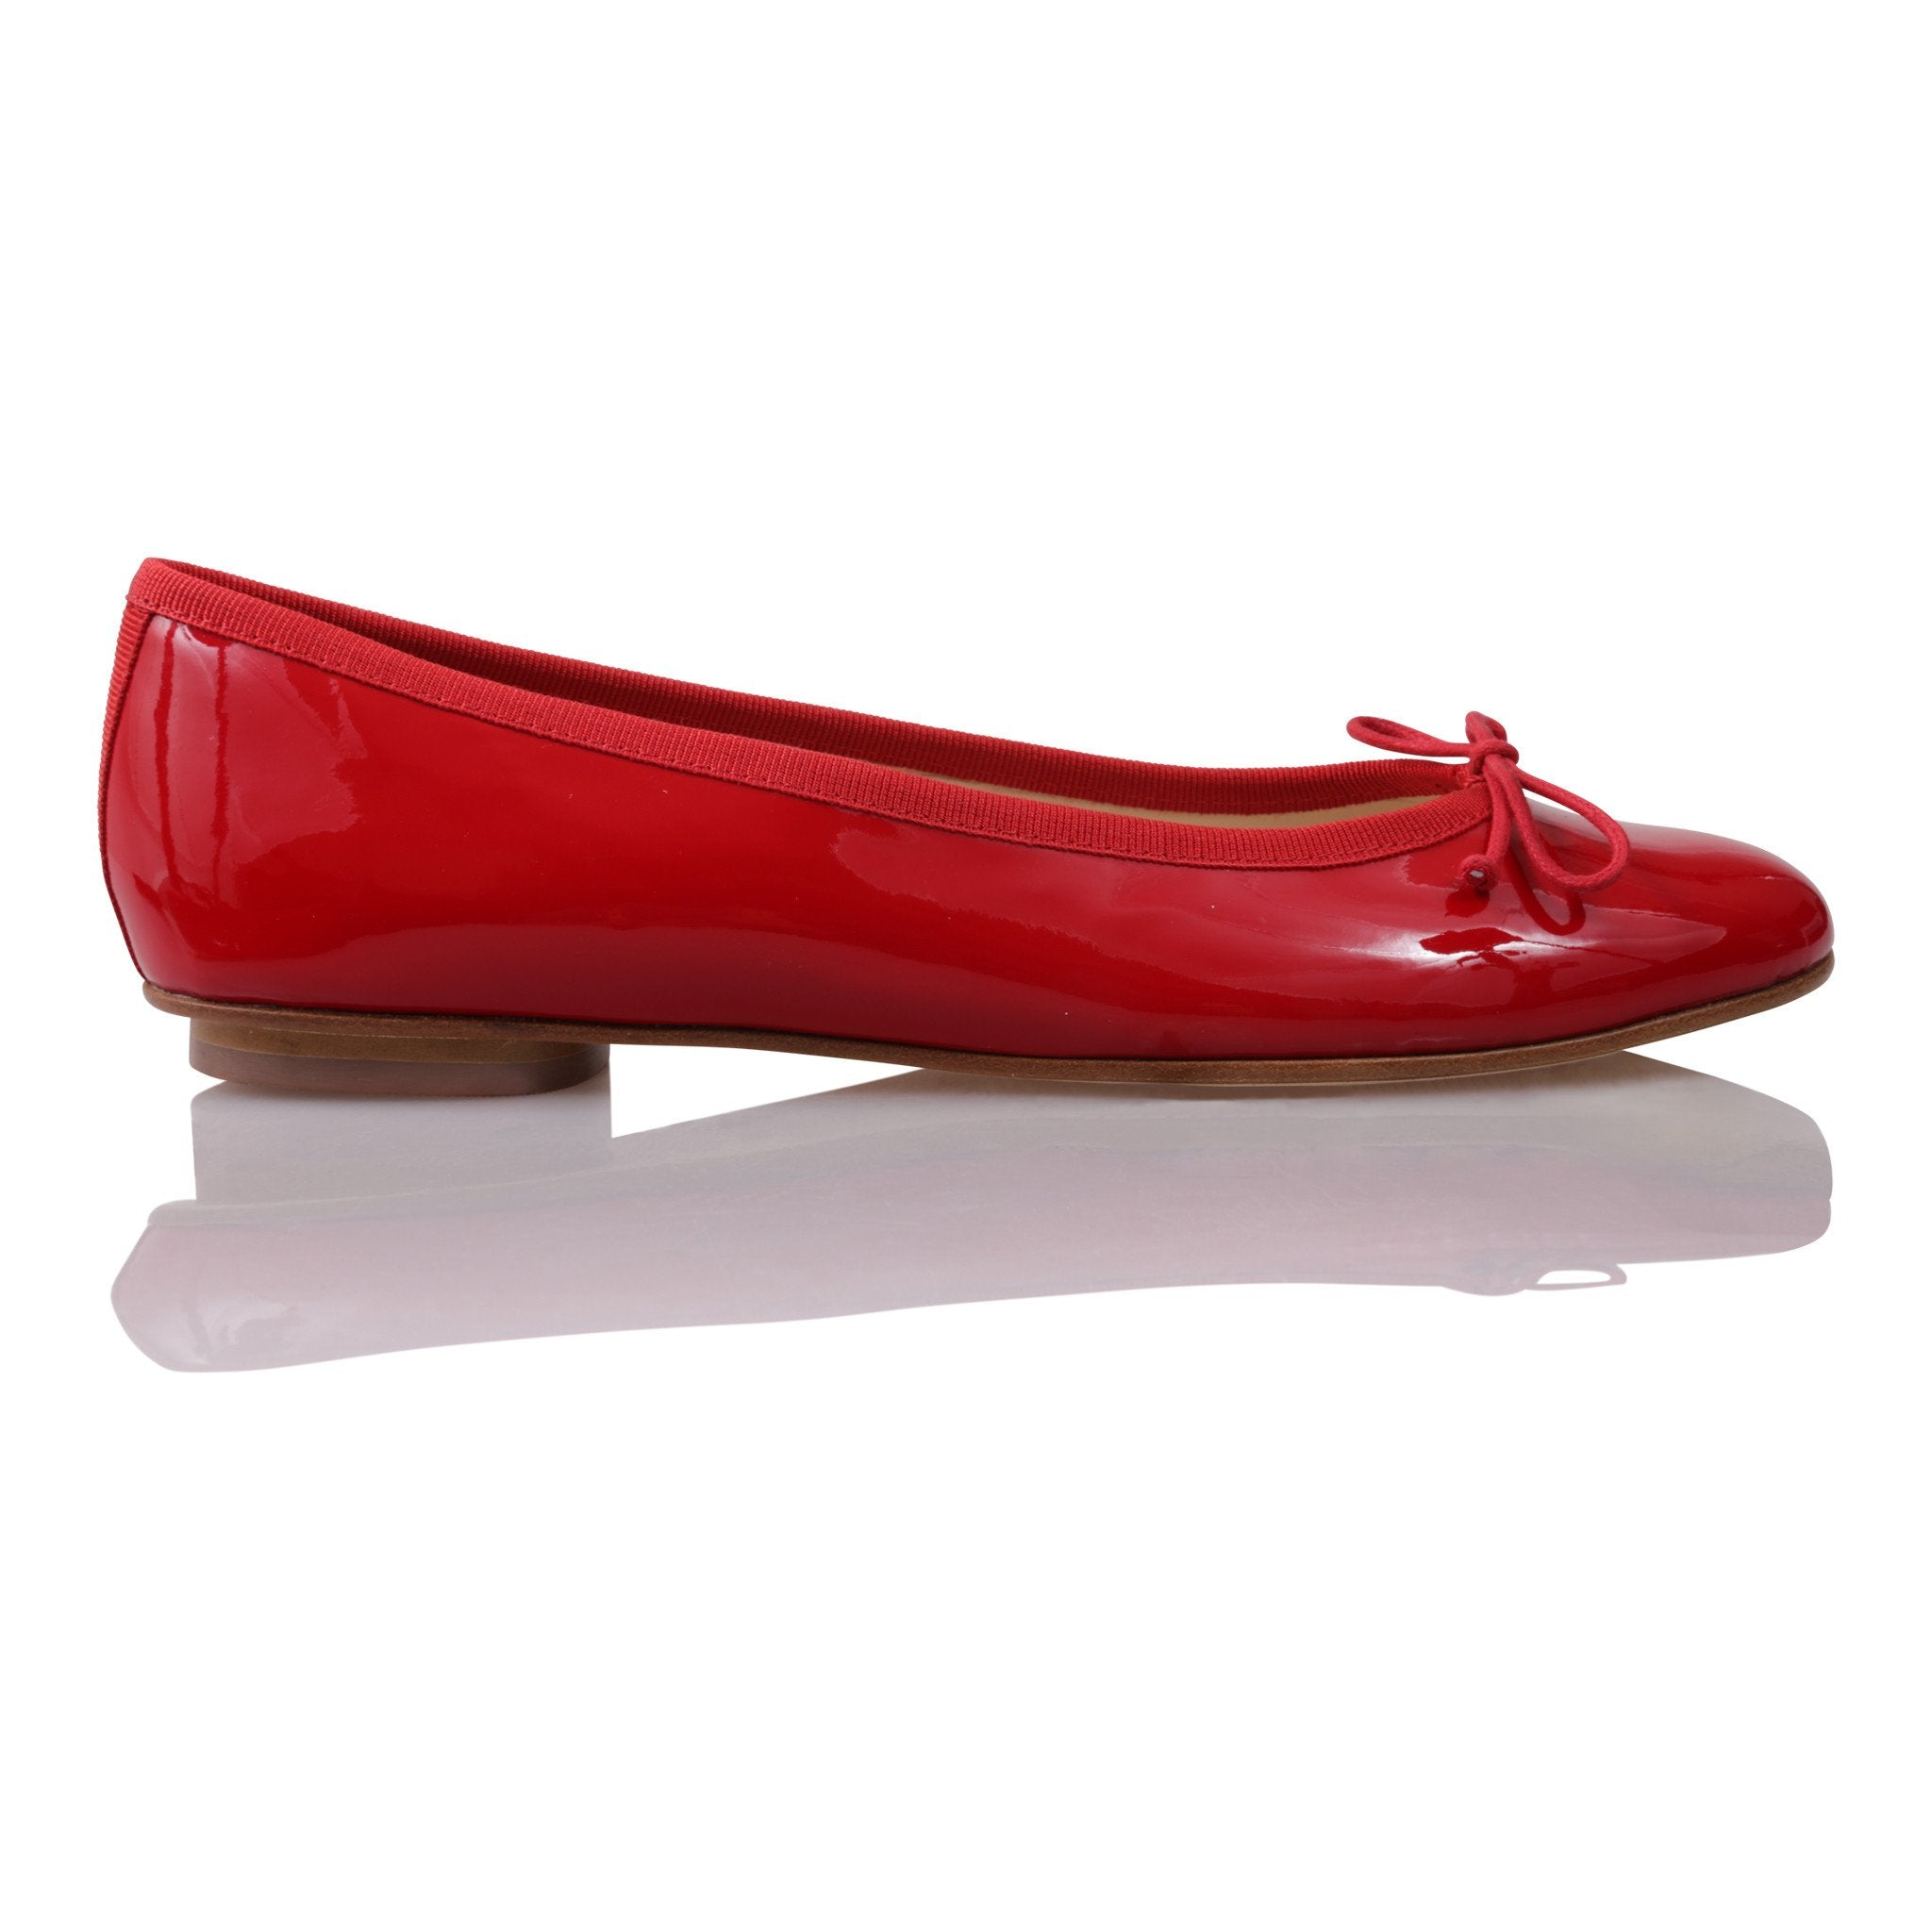 ROMA - Patent Rosso + Drawstring Rosso Bow, VIAJIYU - Women's Hand Made Sustainable Luxury Shoes. Made in Italy. Made to Order.